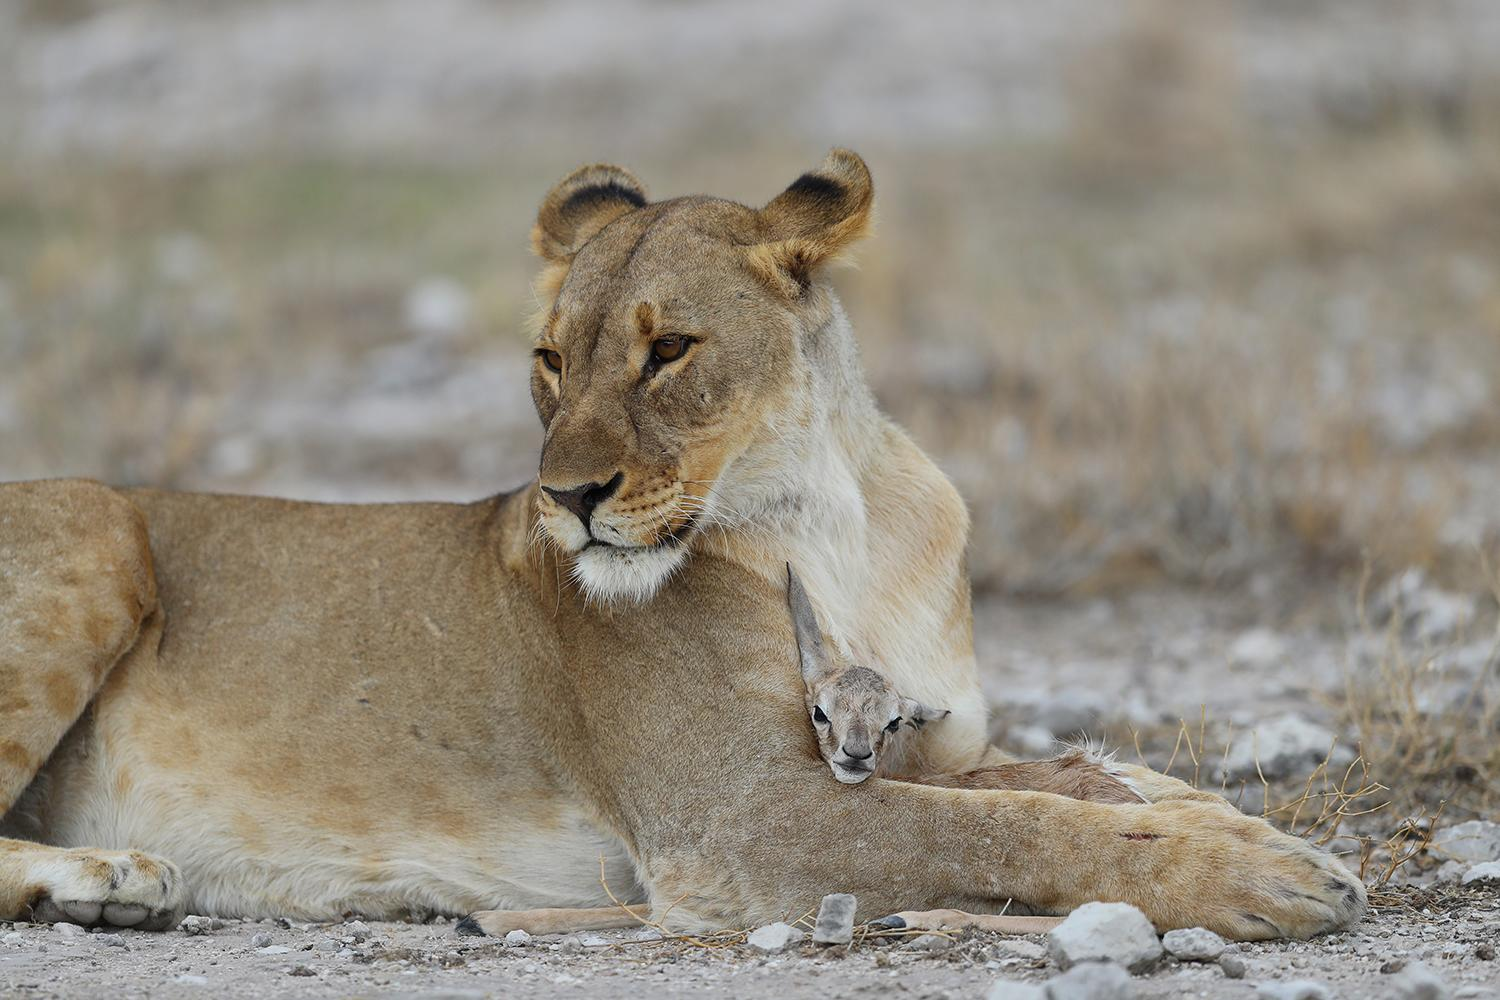 <p>A lioness holds a young springbok after capturing it near the Namutoni camp in Etosha National Park. (Photo: Gordon Donovan/Yahoo News) </p>